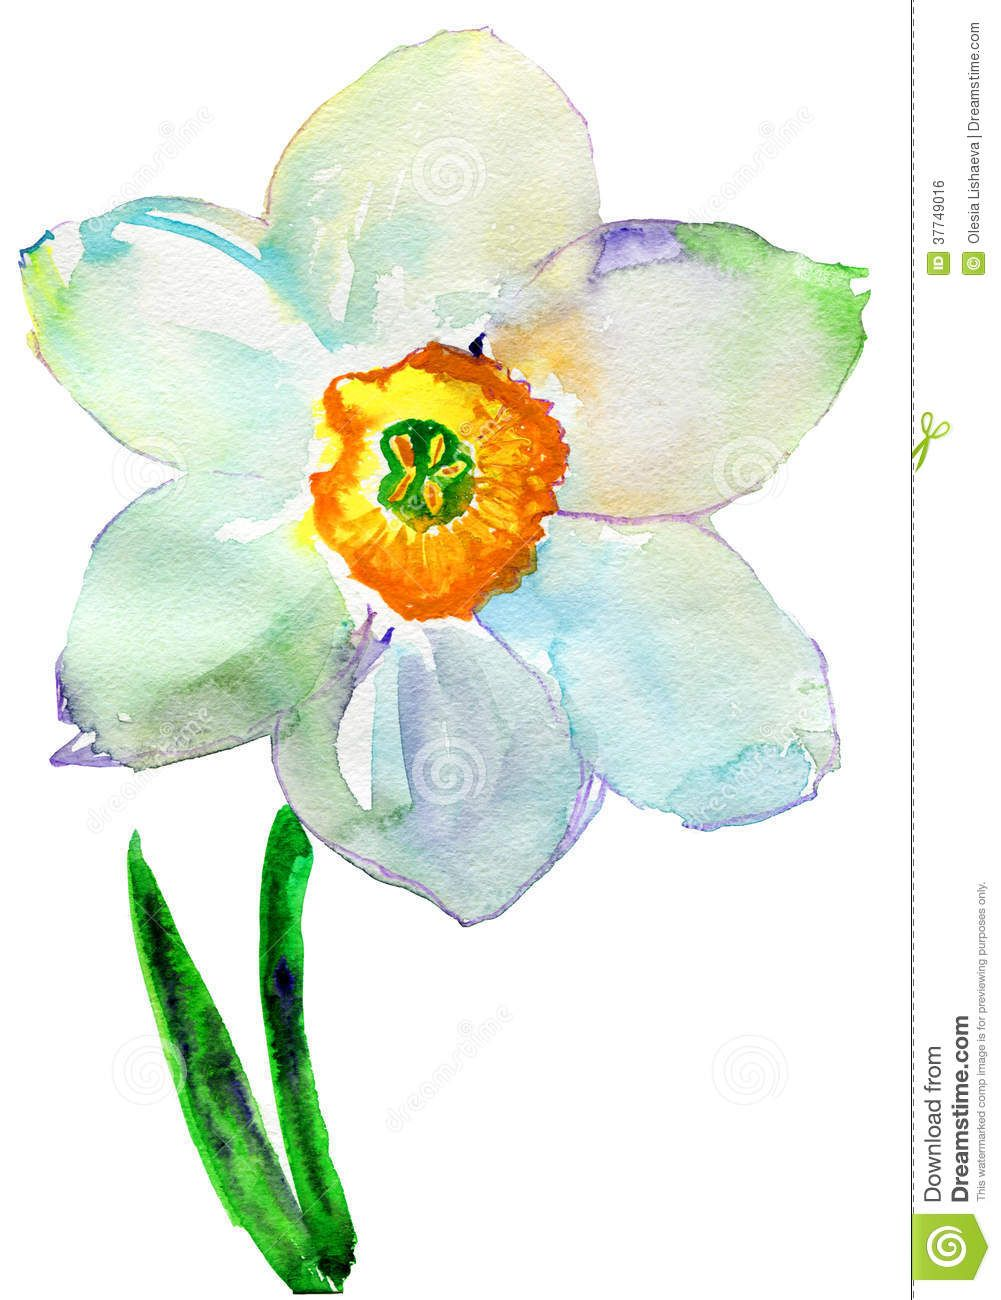 watercolor narcissus Watercolor illustration, Narcissus